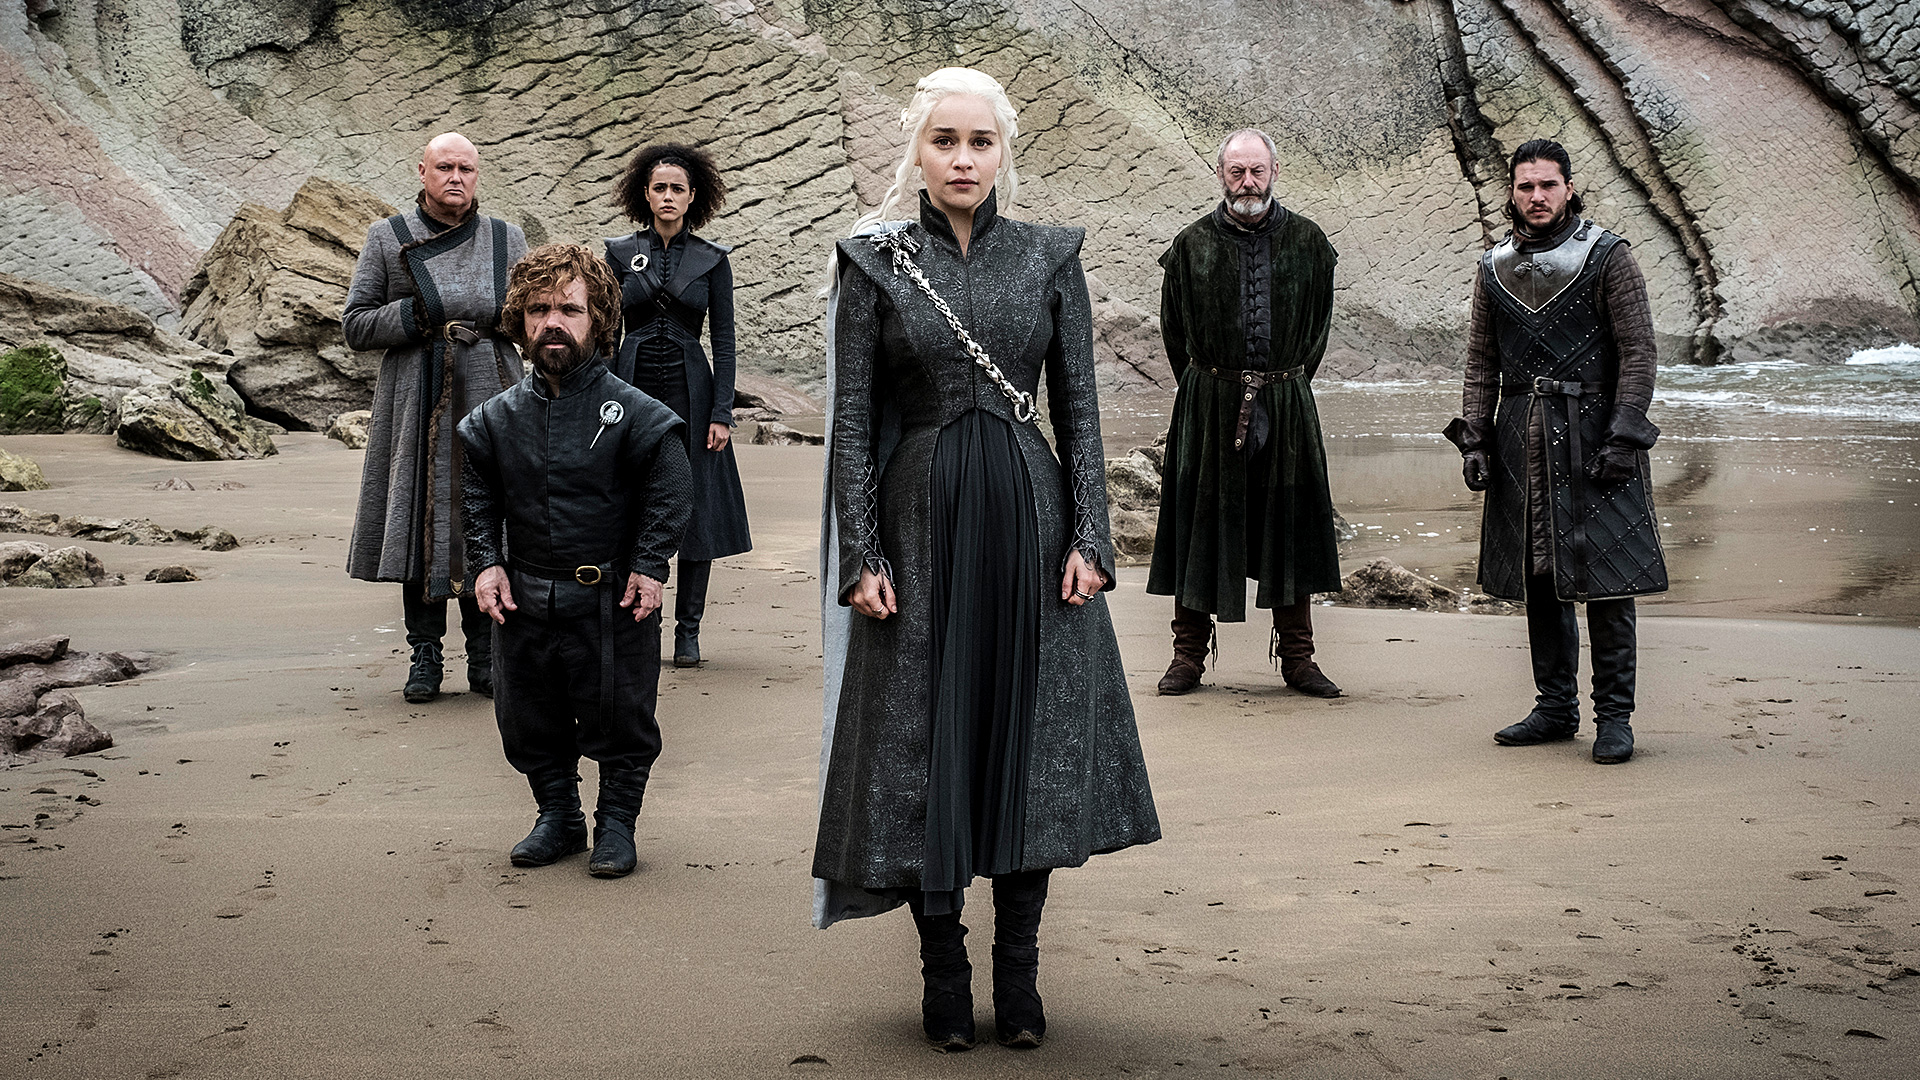 La guerra de 'Game of Thrones' rompe récord de audiencia